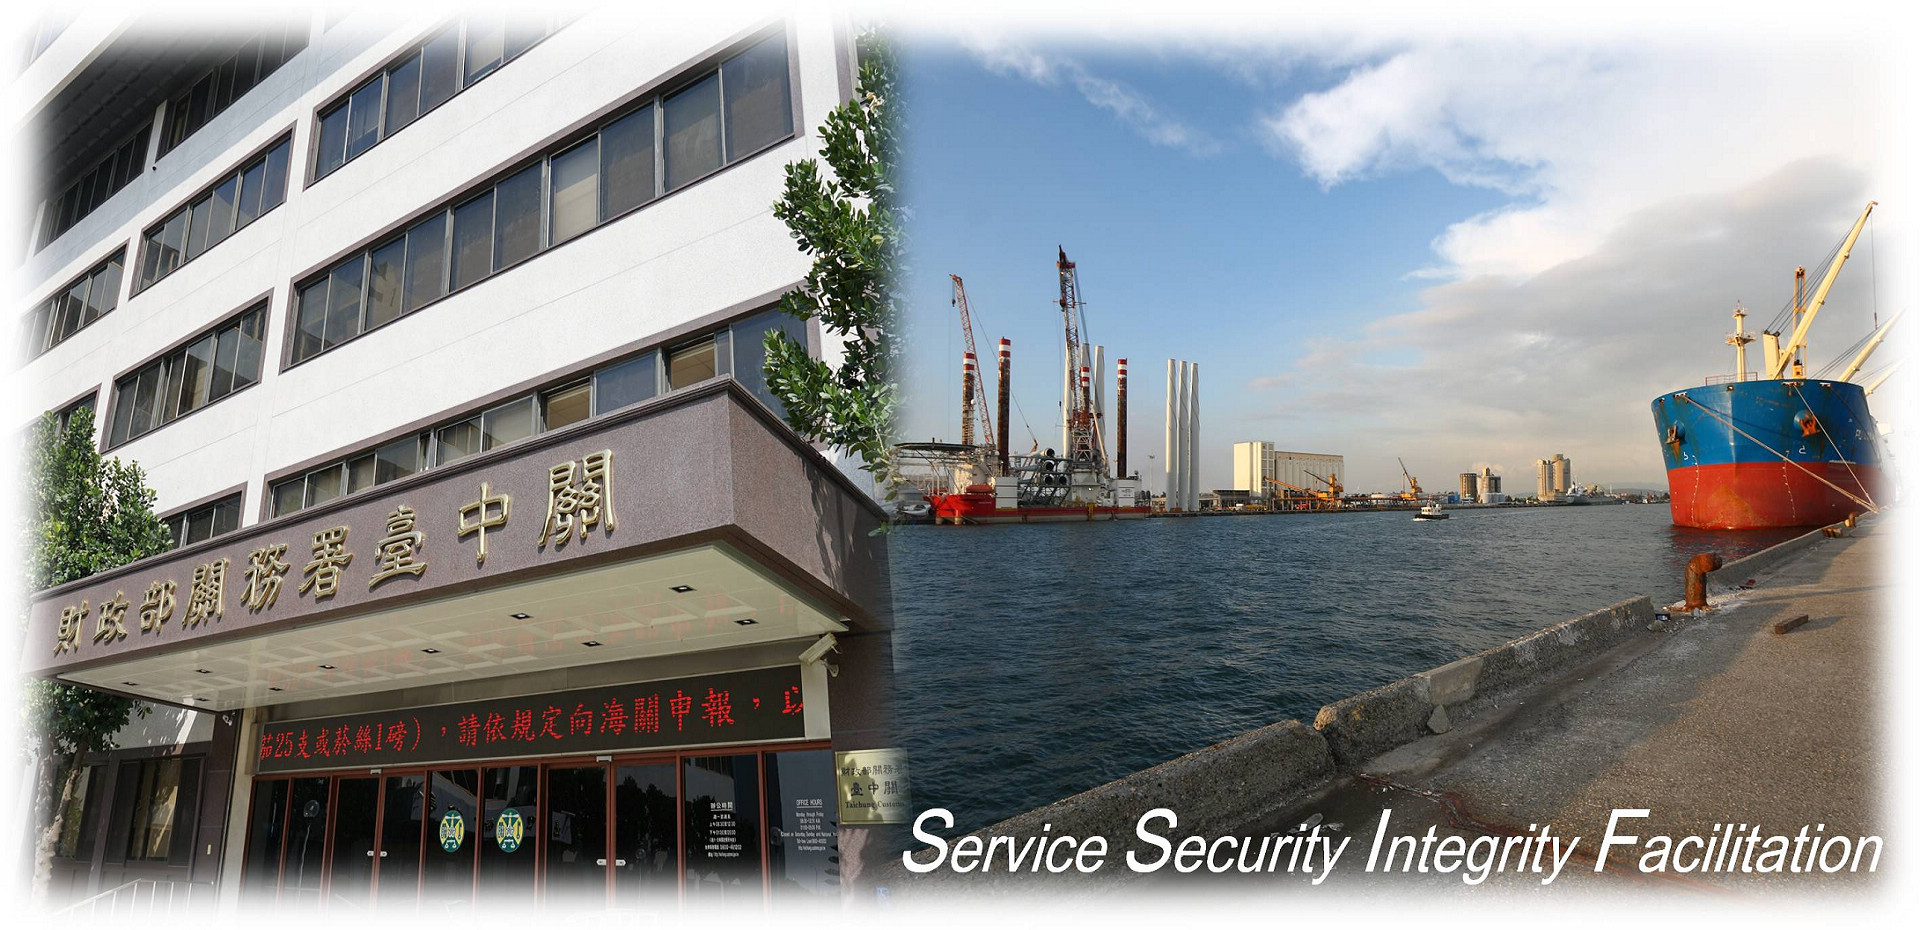 About Taichung Customs